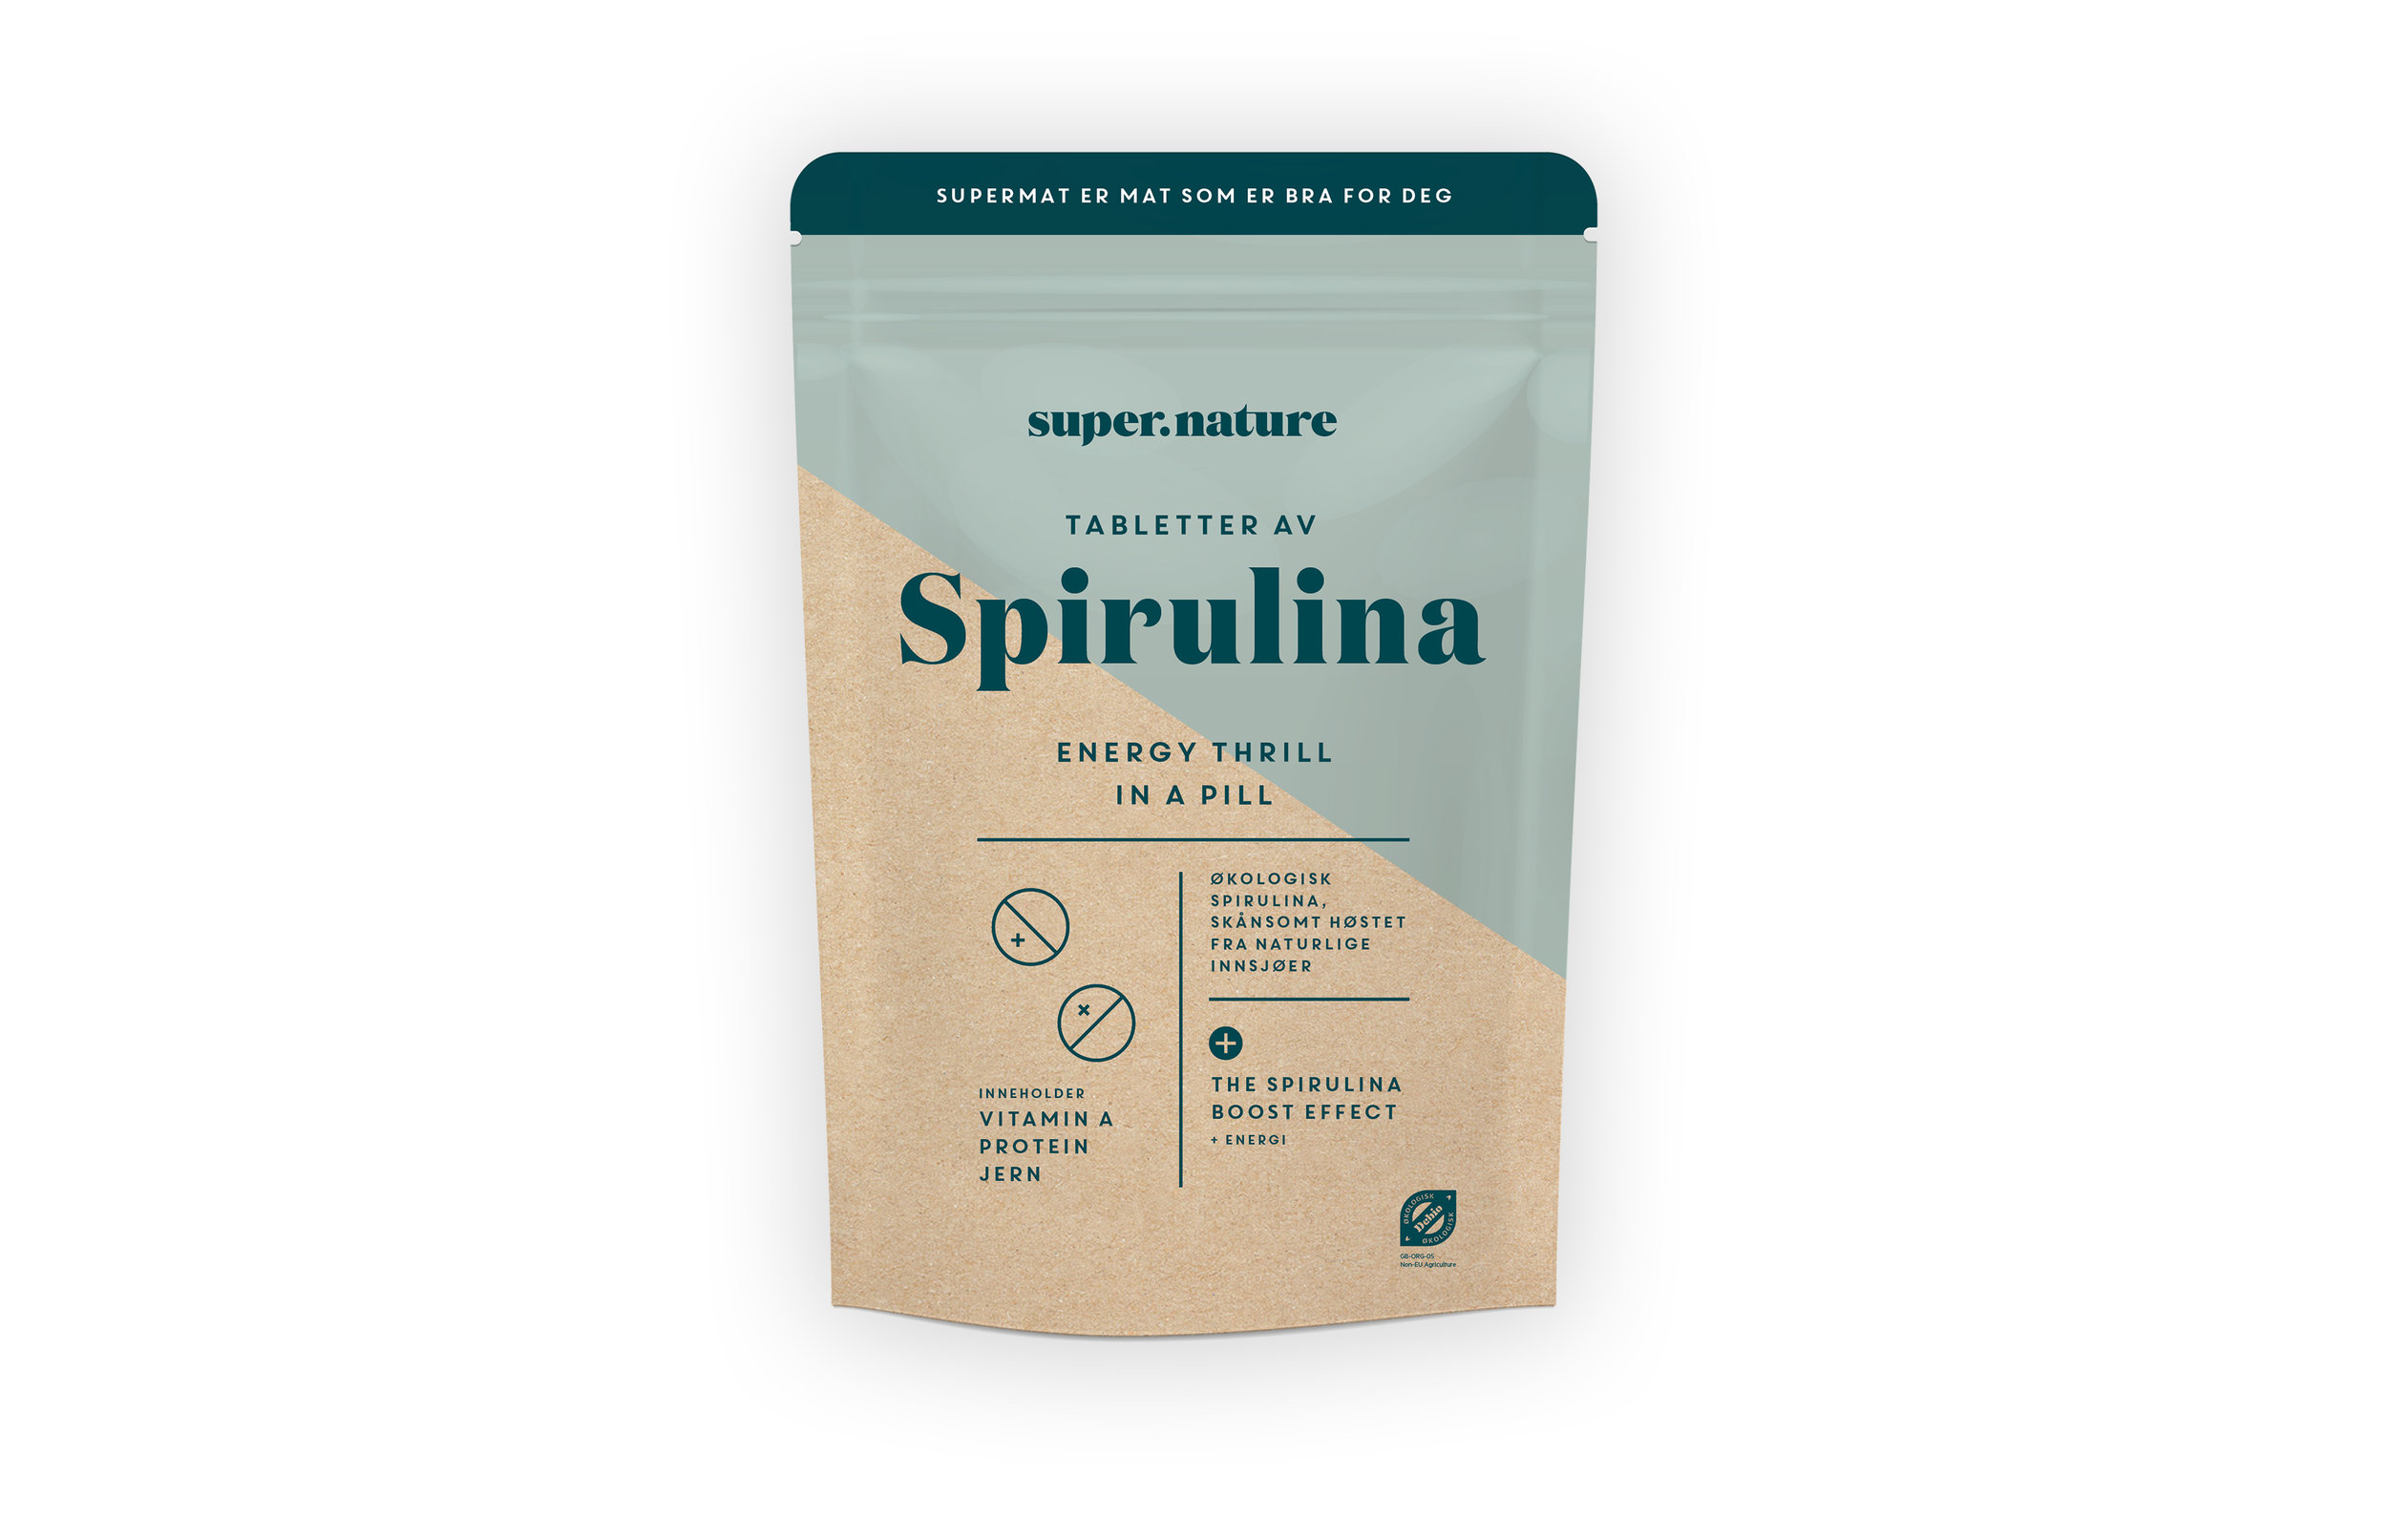 Supernature Spirulina-tabletter -